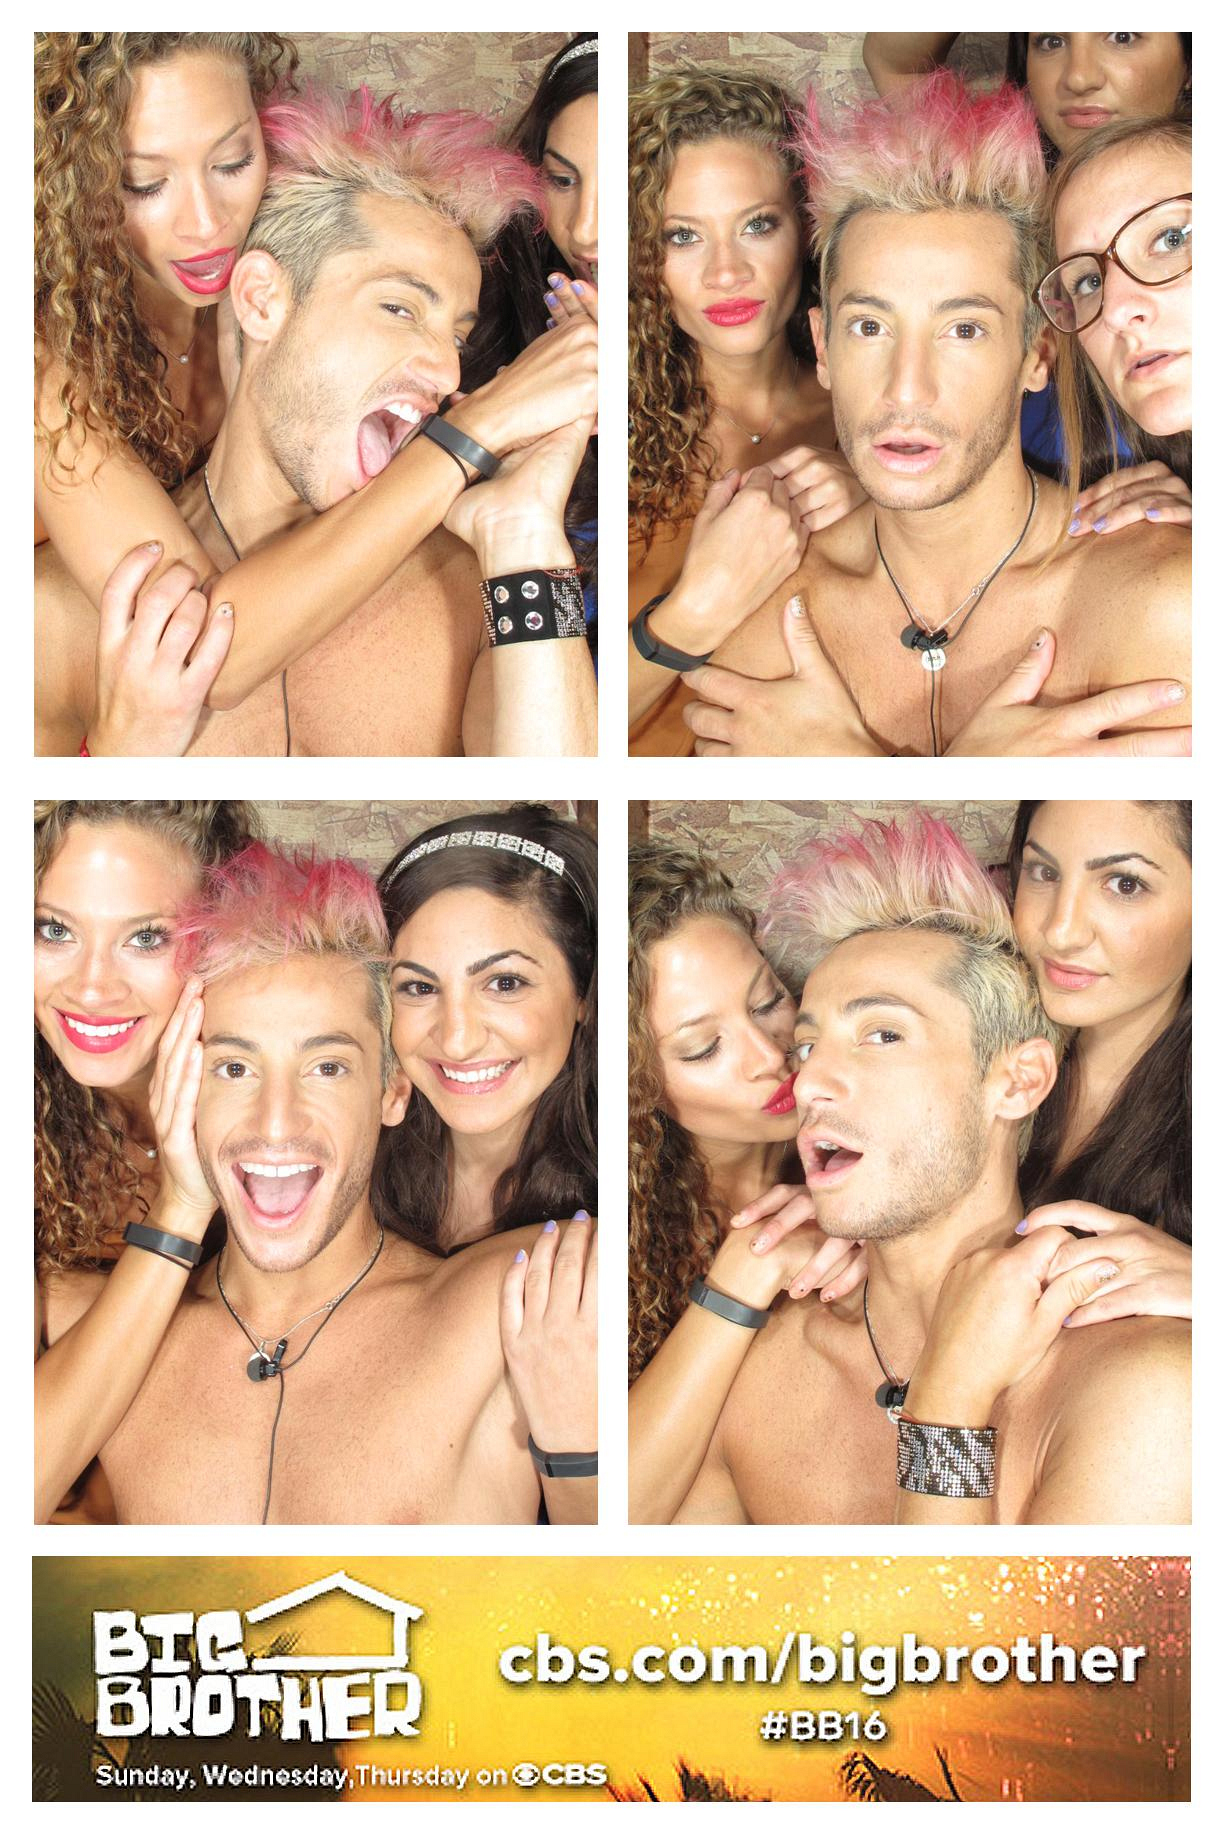 Frankie in the middle